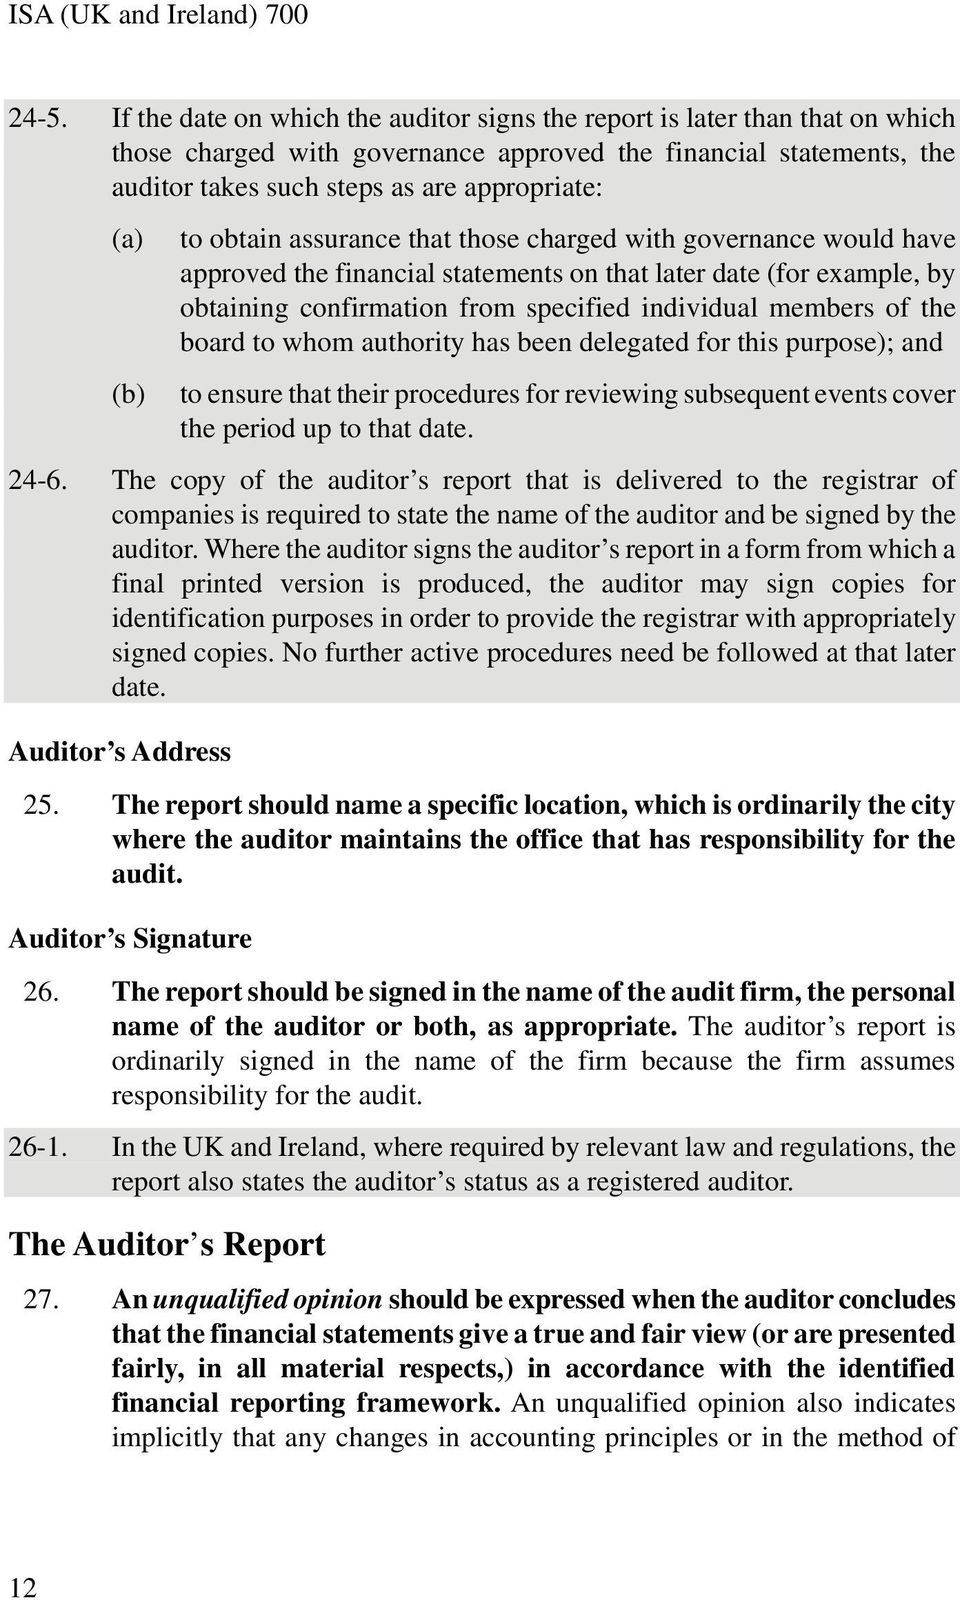 members of the board to whom authority has been delegated for this purpose); and to ensure that their procedures for reviewing subsequent events cover the period up to that date. 24-6.